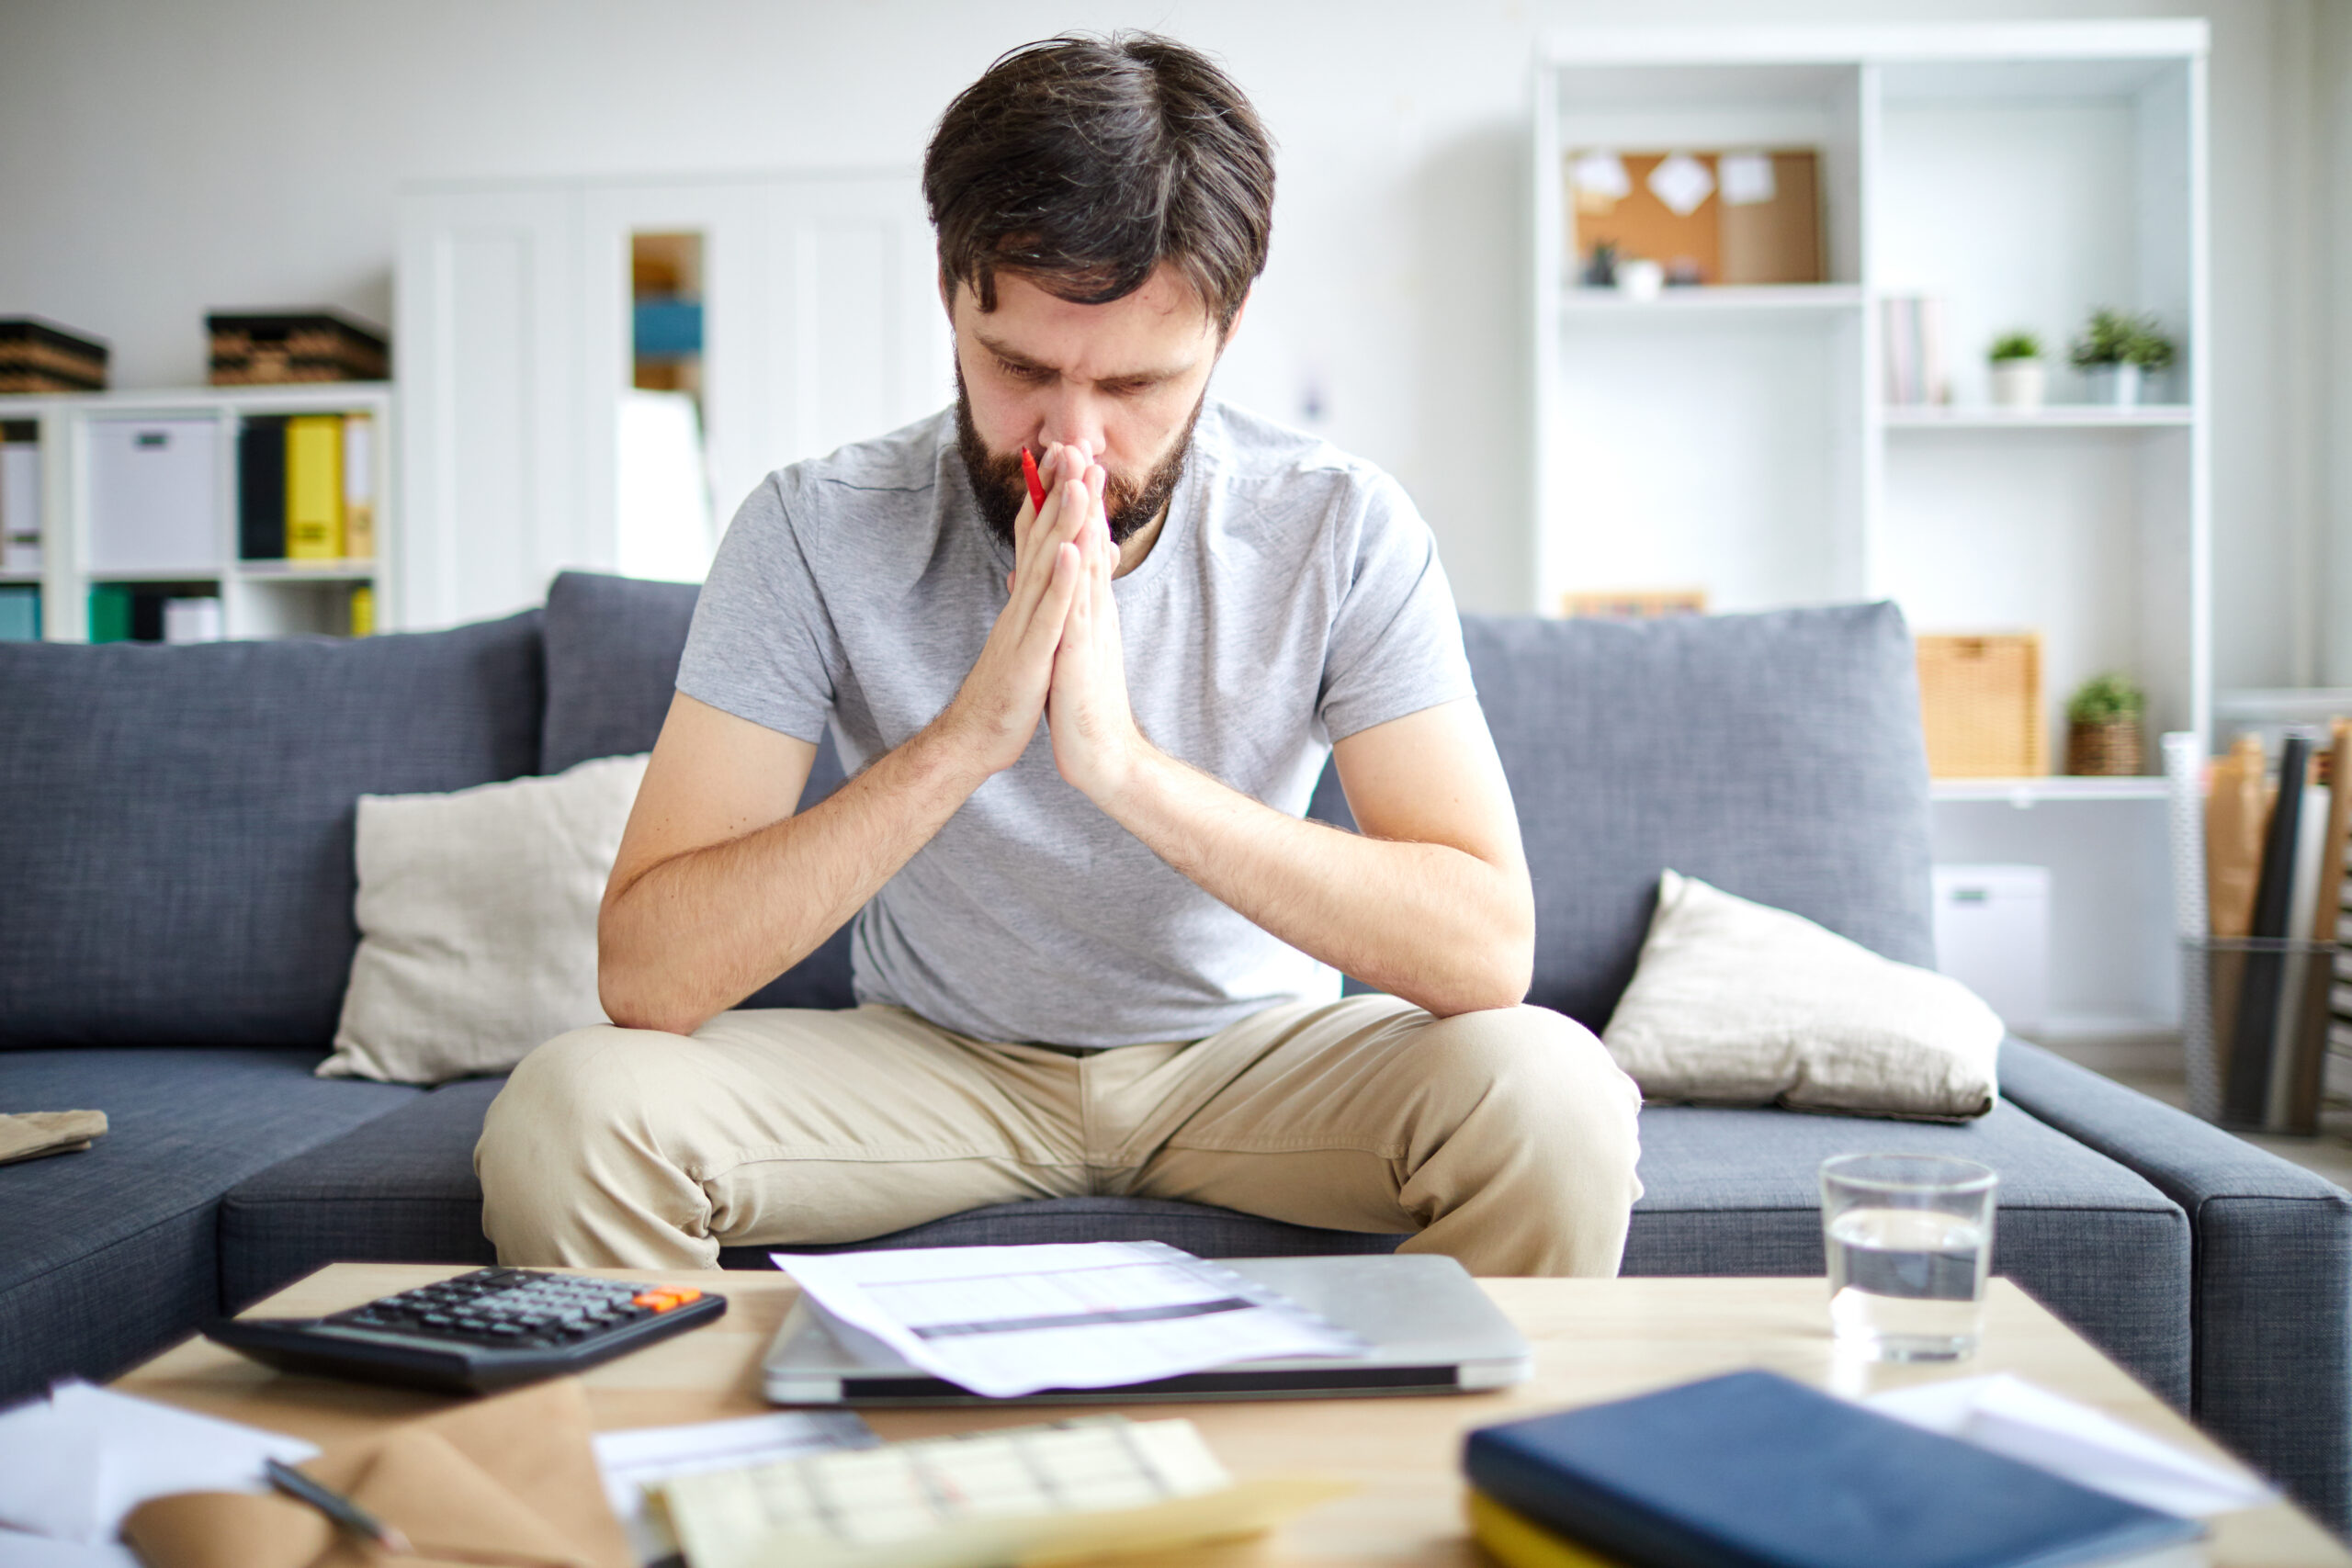 Four Common Tax Return Mistakes That Could Get You in Trouble with the IRS